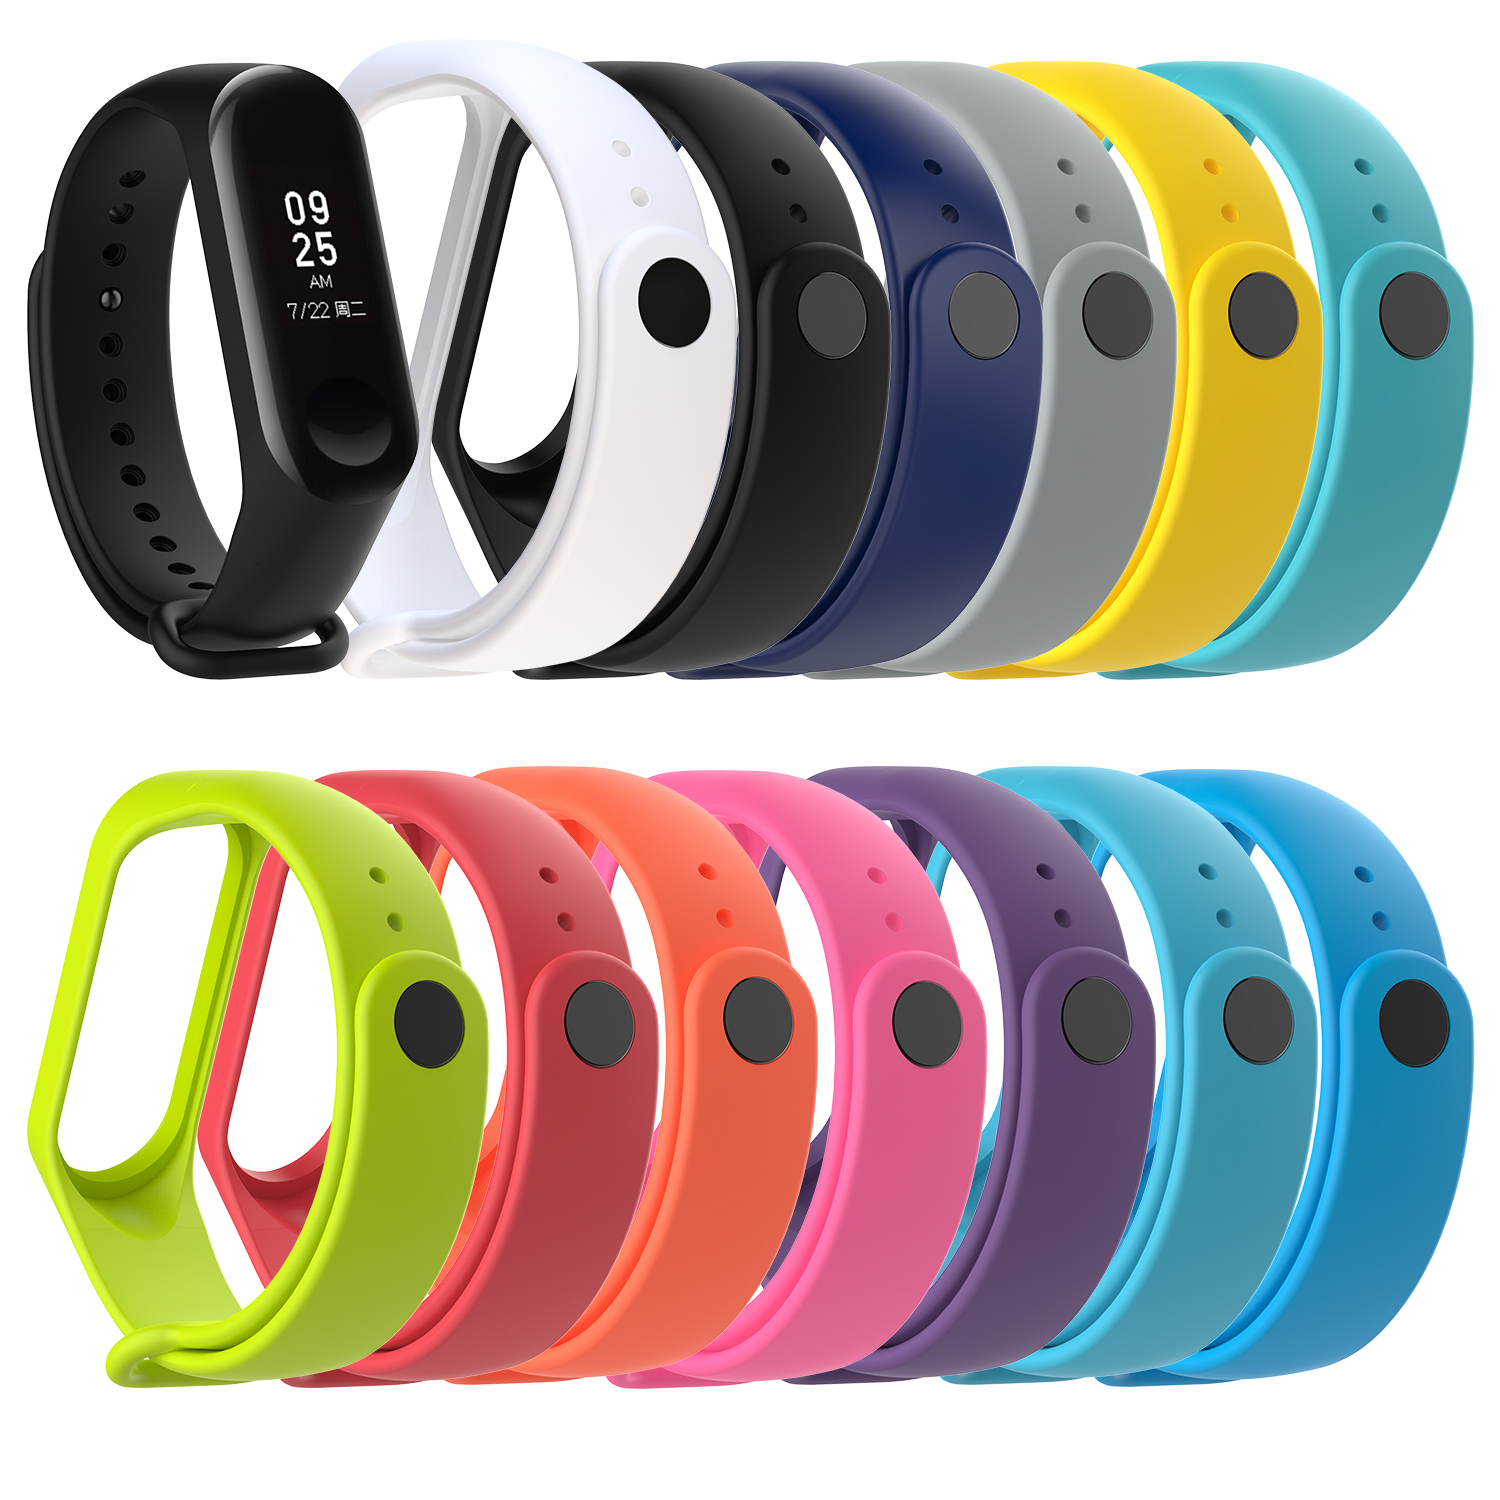 New Sport Watch Band Solid Color Wristband TPU Material Wrist Strap Replacement For Xiaomi Mi Band 4 Smart Wristband Replacement